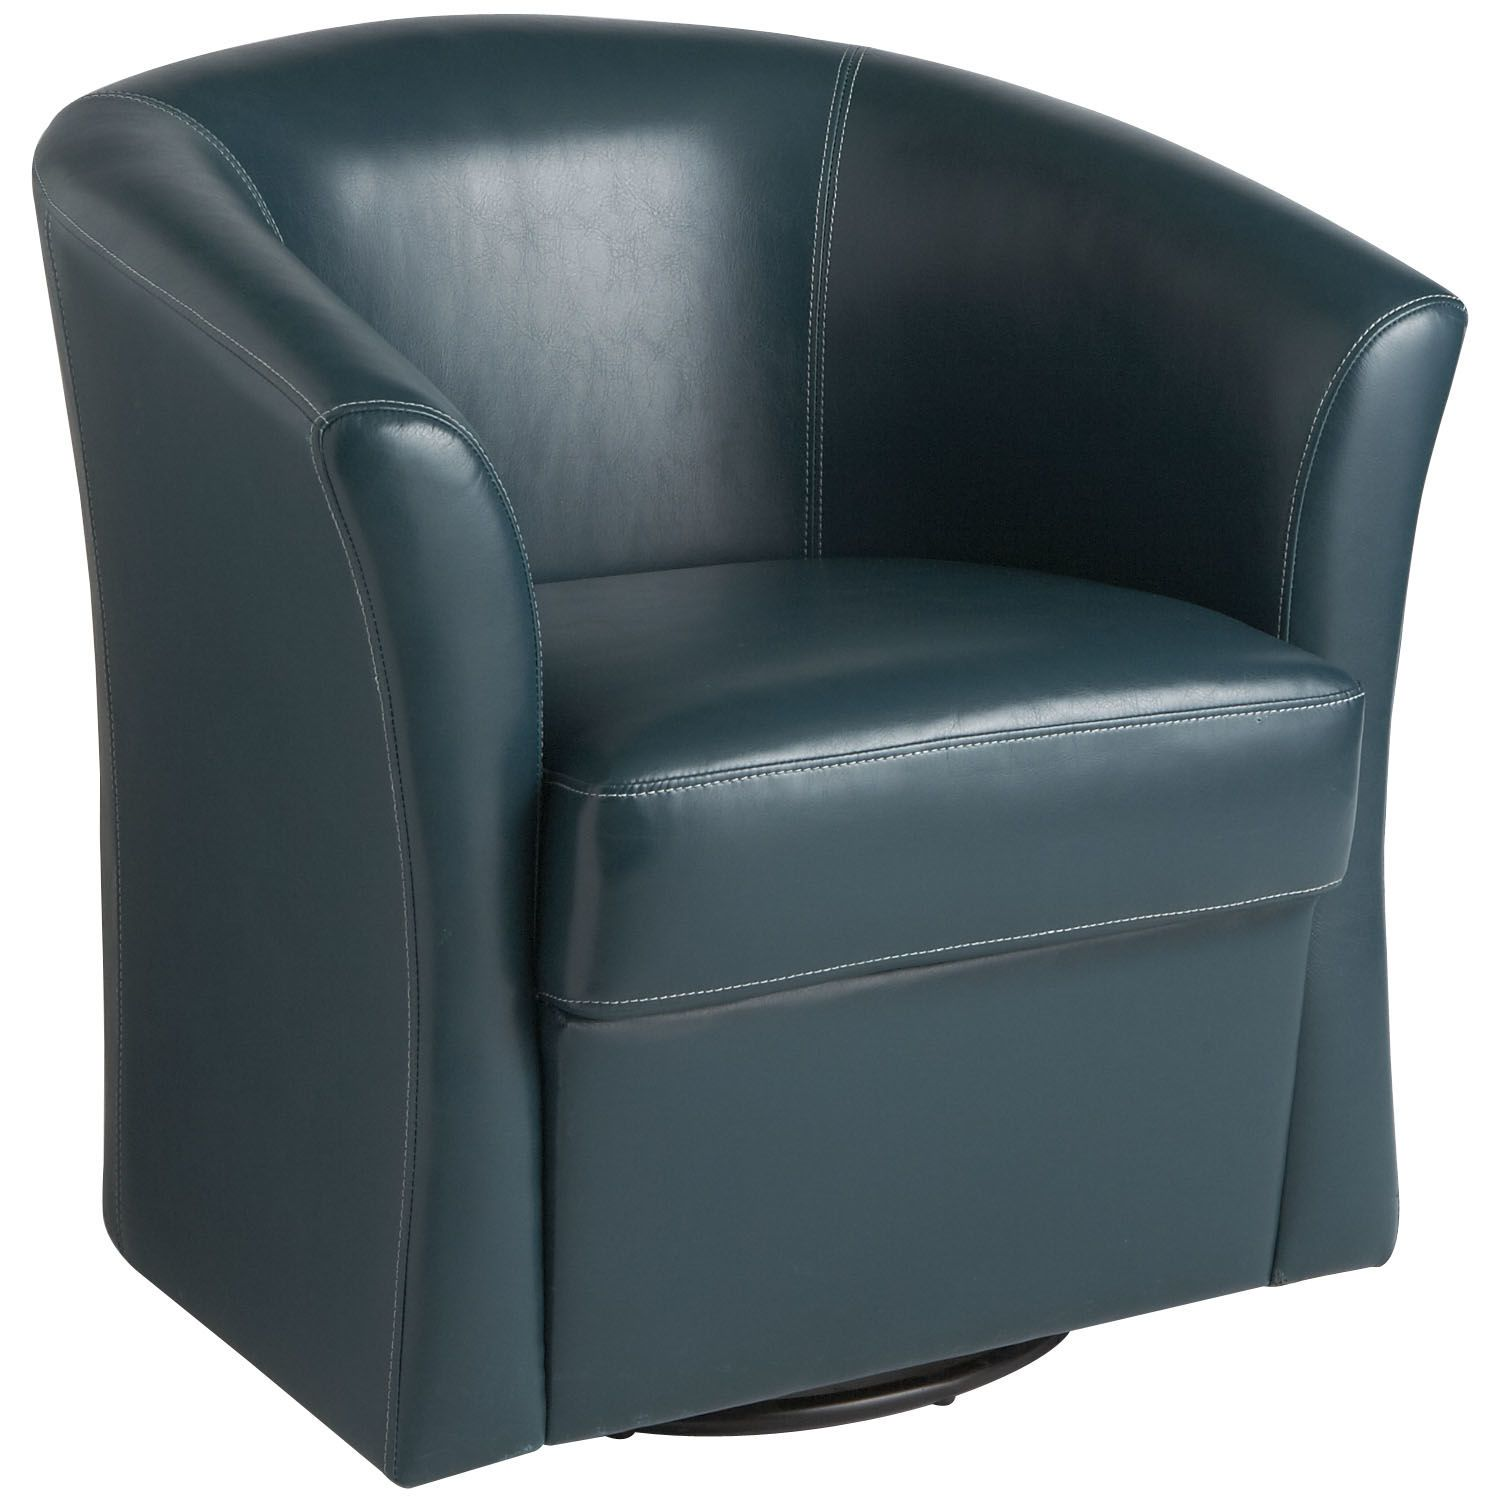 Isaac Swivel Chair Teal Pier 1 Imports Swivel chair